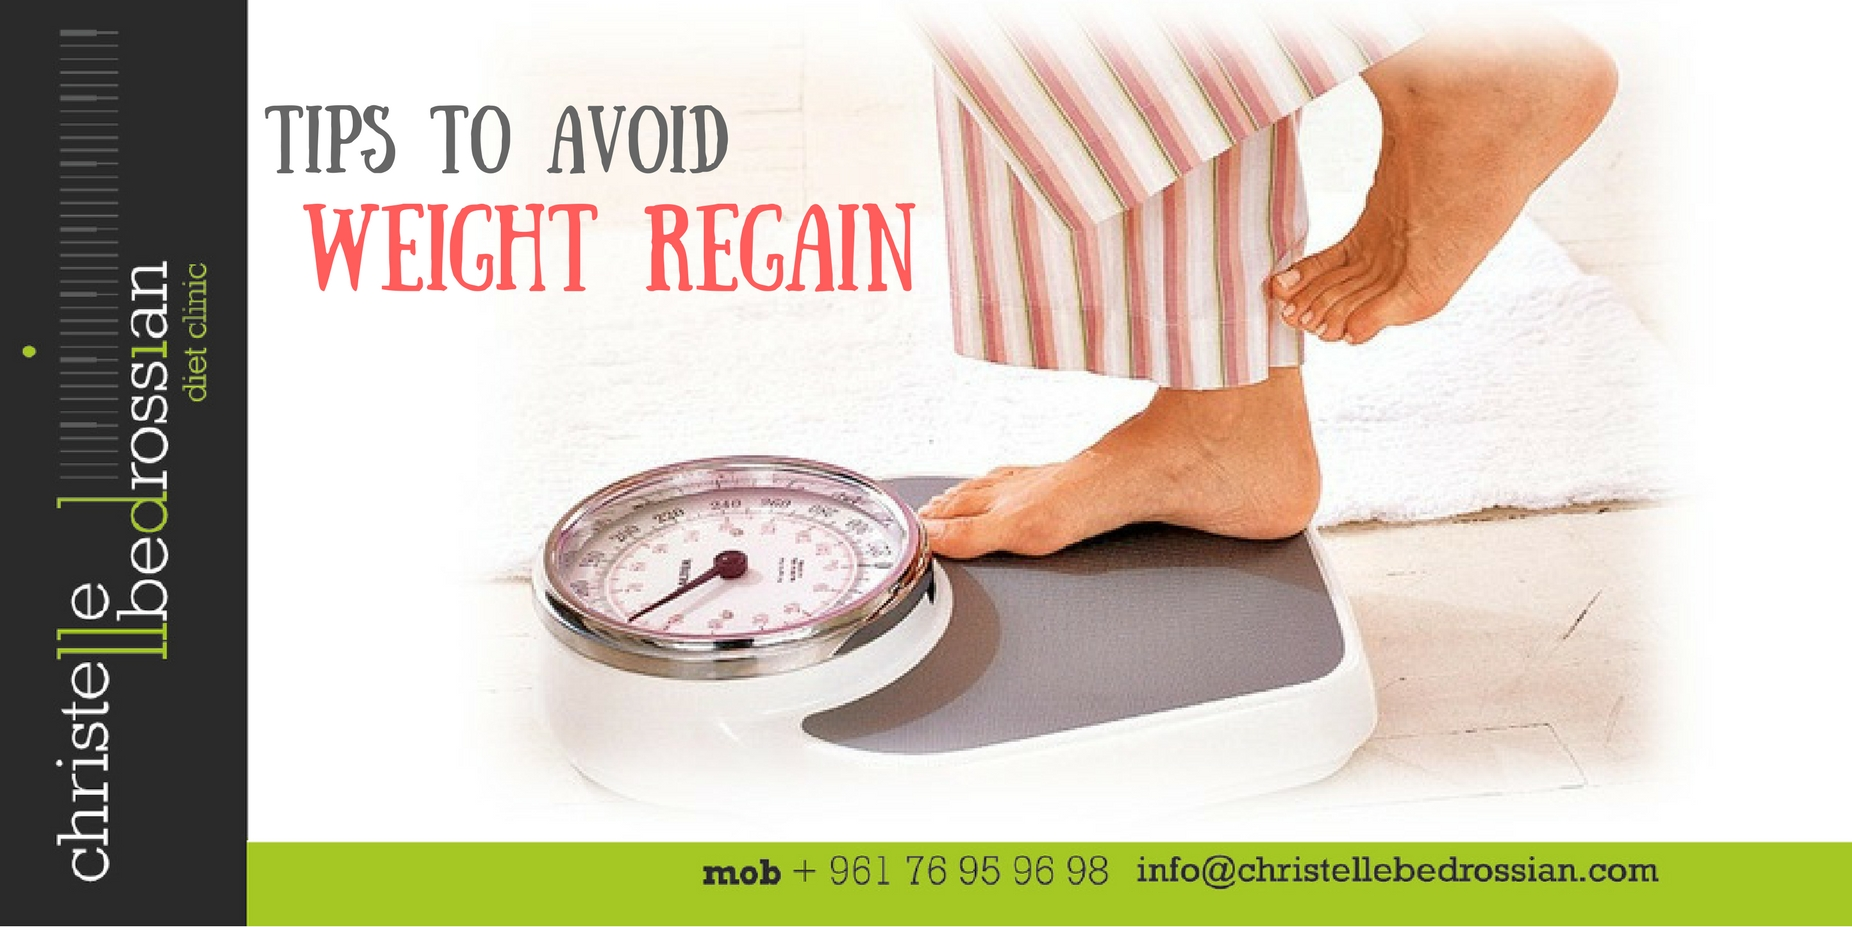 best dietitian lebanon, lebanon, diet, diet clinic, weight regain, healthy tips